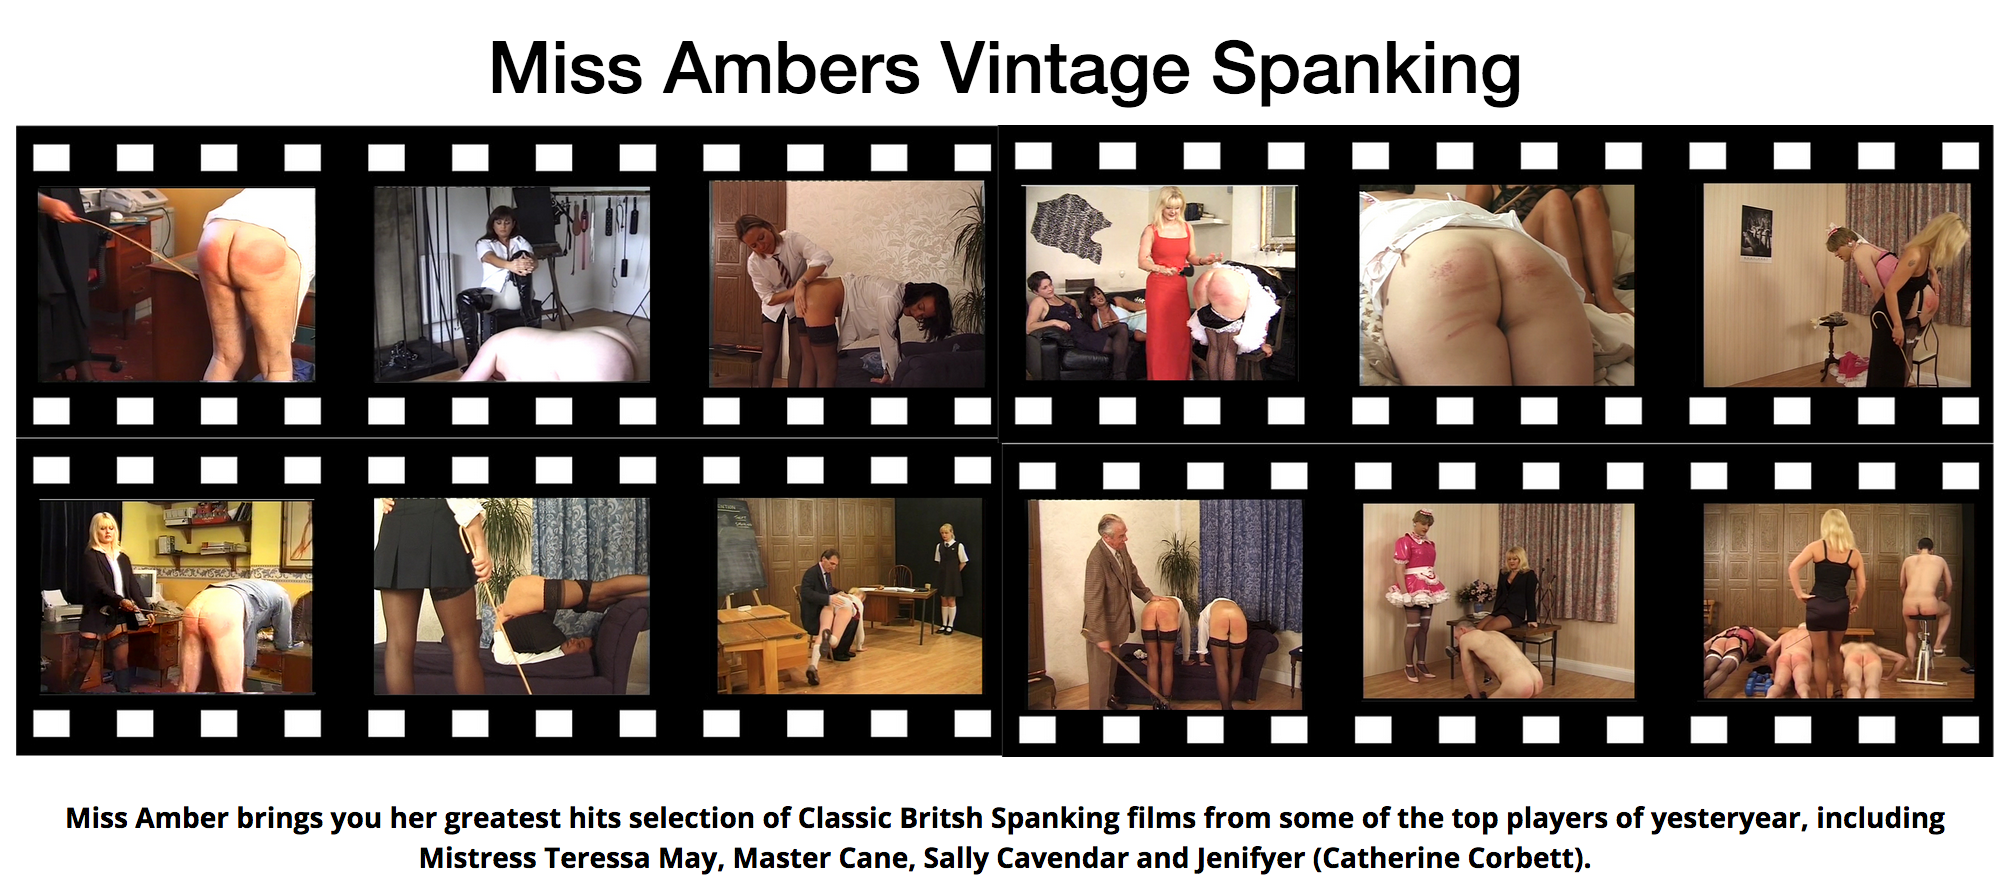 Miss Amber brings you her greatest hits selection of Classic Britsh Spanking films from some of the top players of yesteryear, including Mistress Teressa May, Master Cane, Sally Cavendar and Jenifyer (Catherine Corbett).